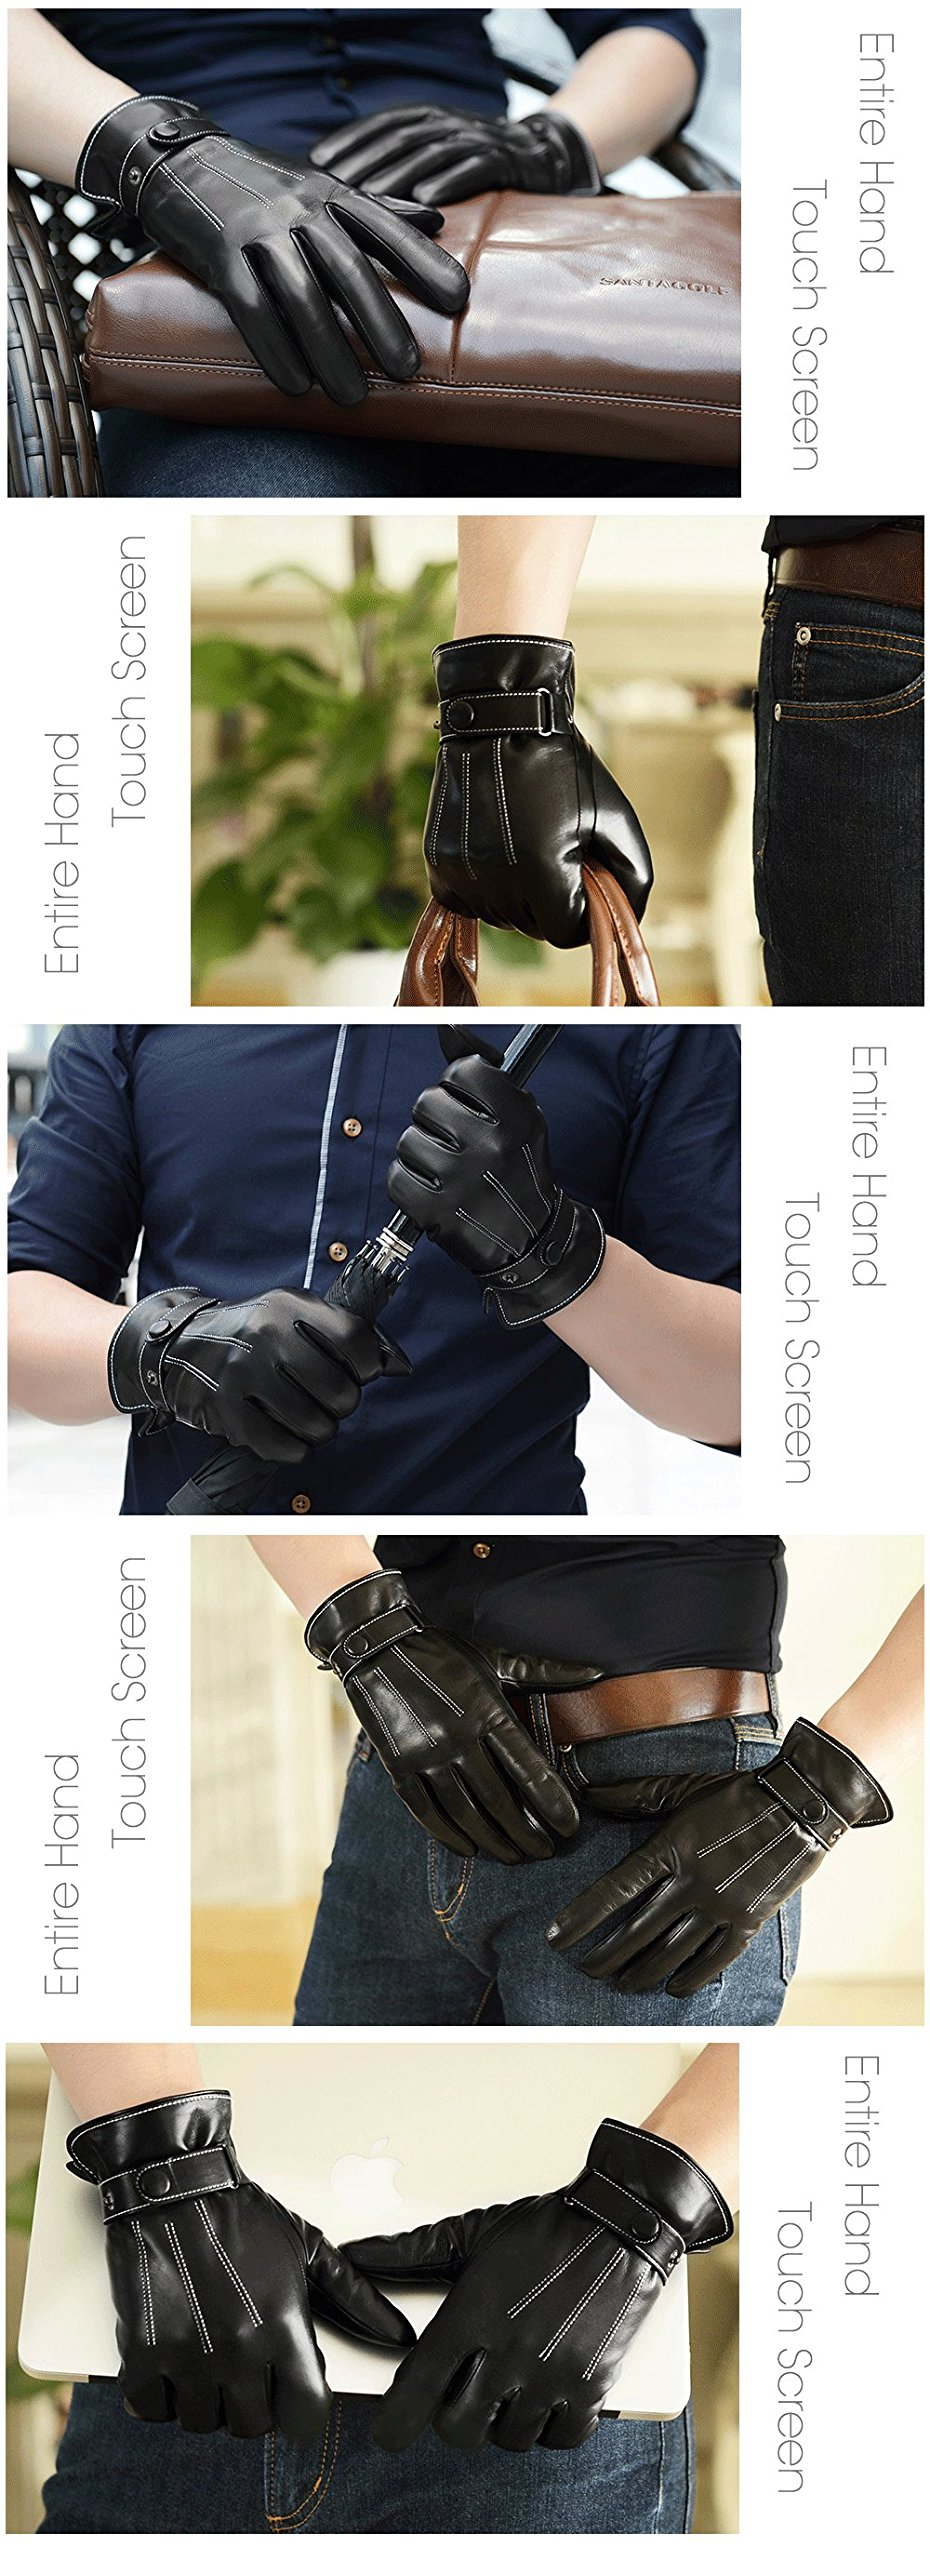 Harrms Best Luxury Touchscreen Italian Nappa Leather Gloves for men's Texting Driving (XL-9.4''(US Standard Size), BLACK) by Harrms (Image #5)